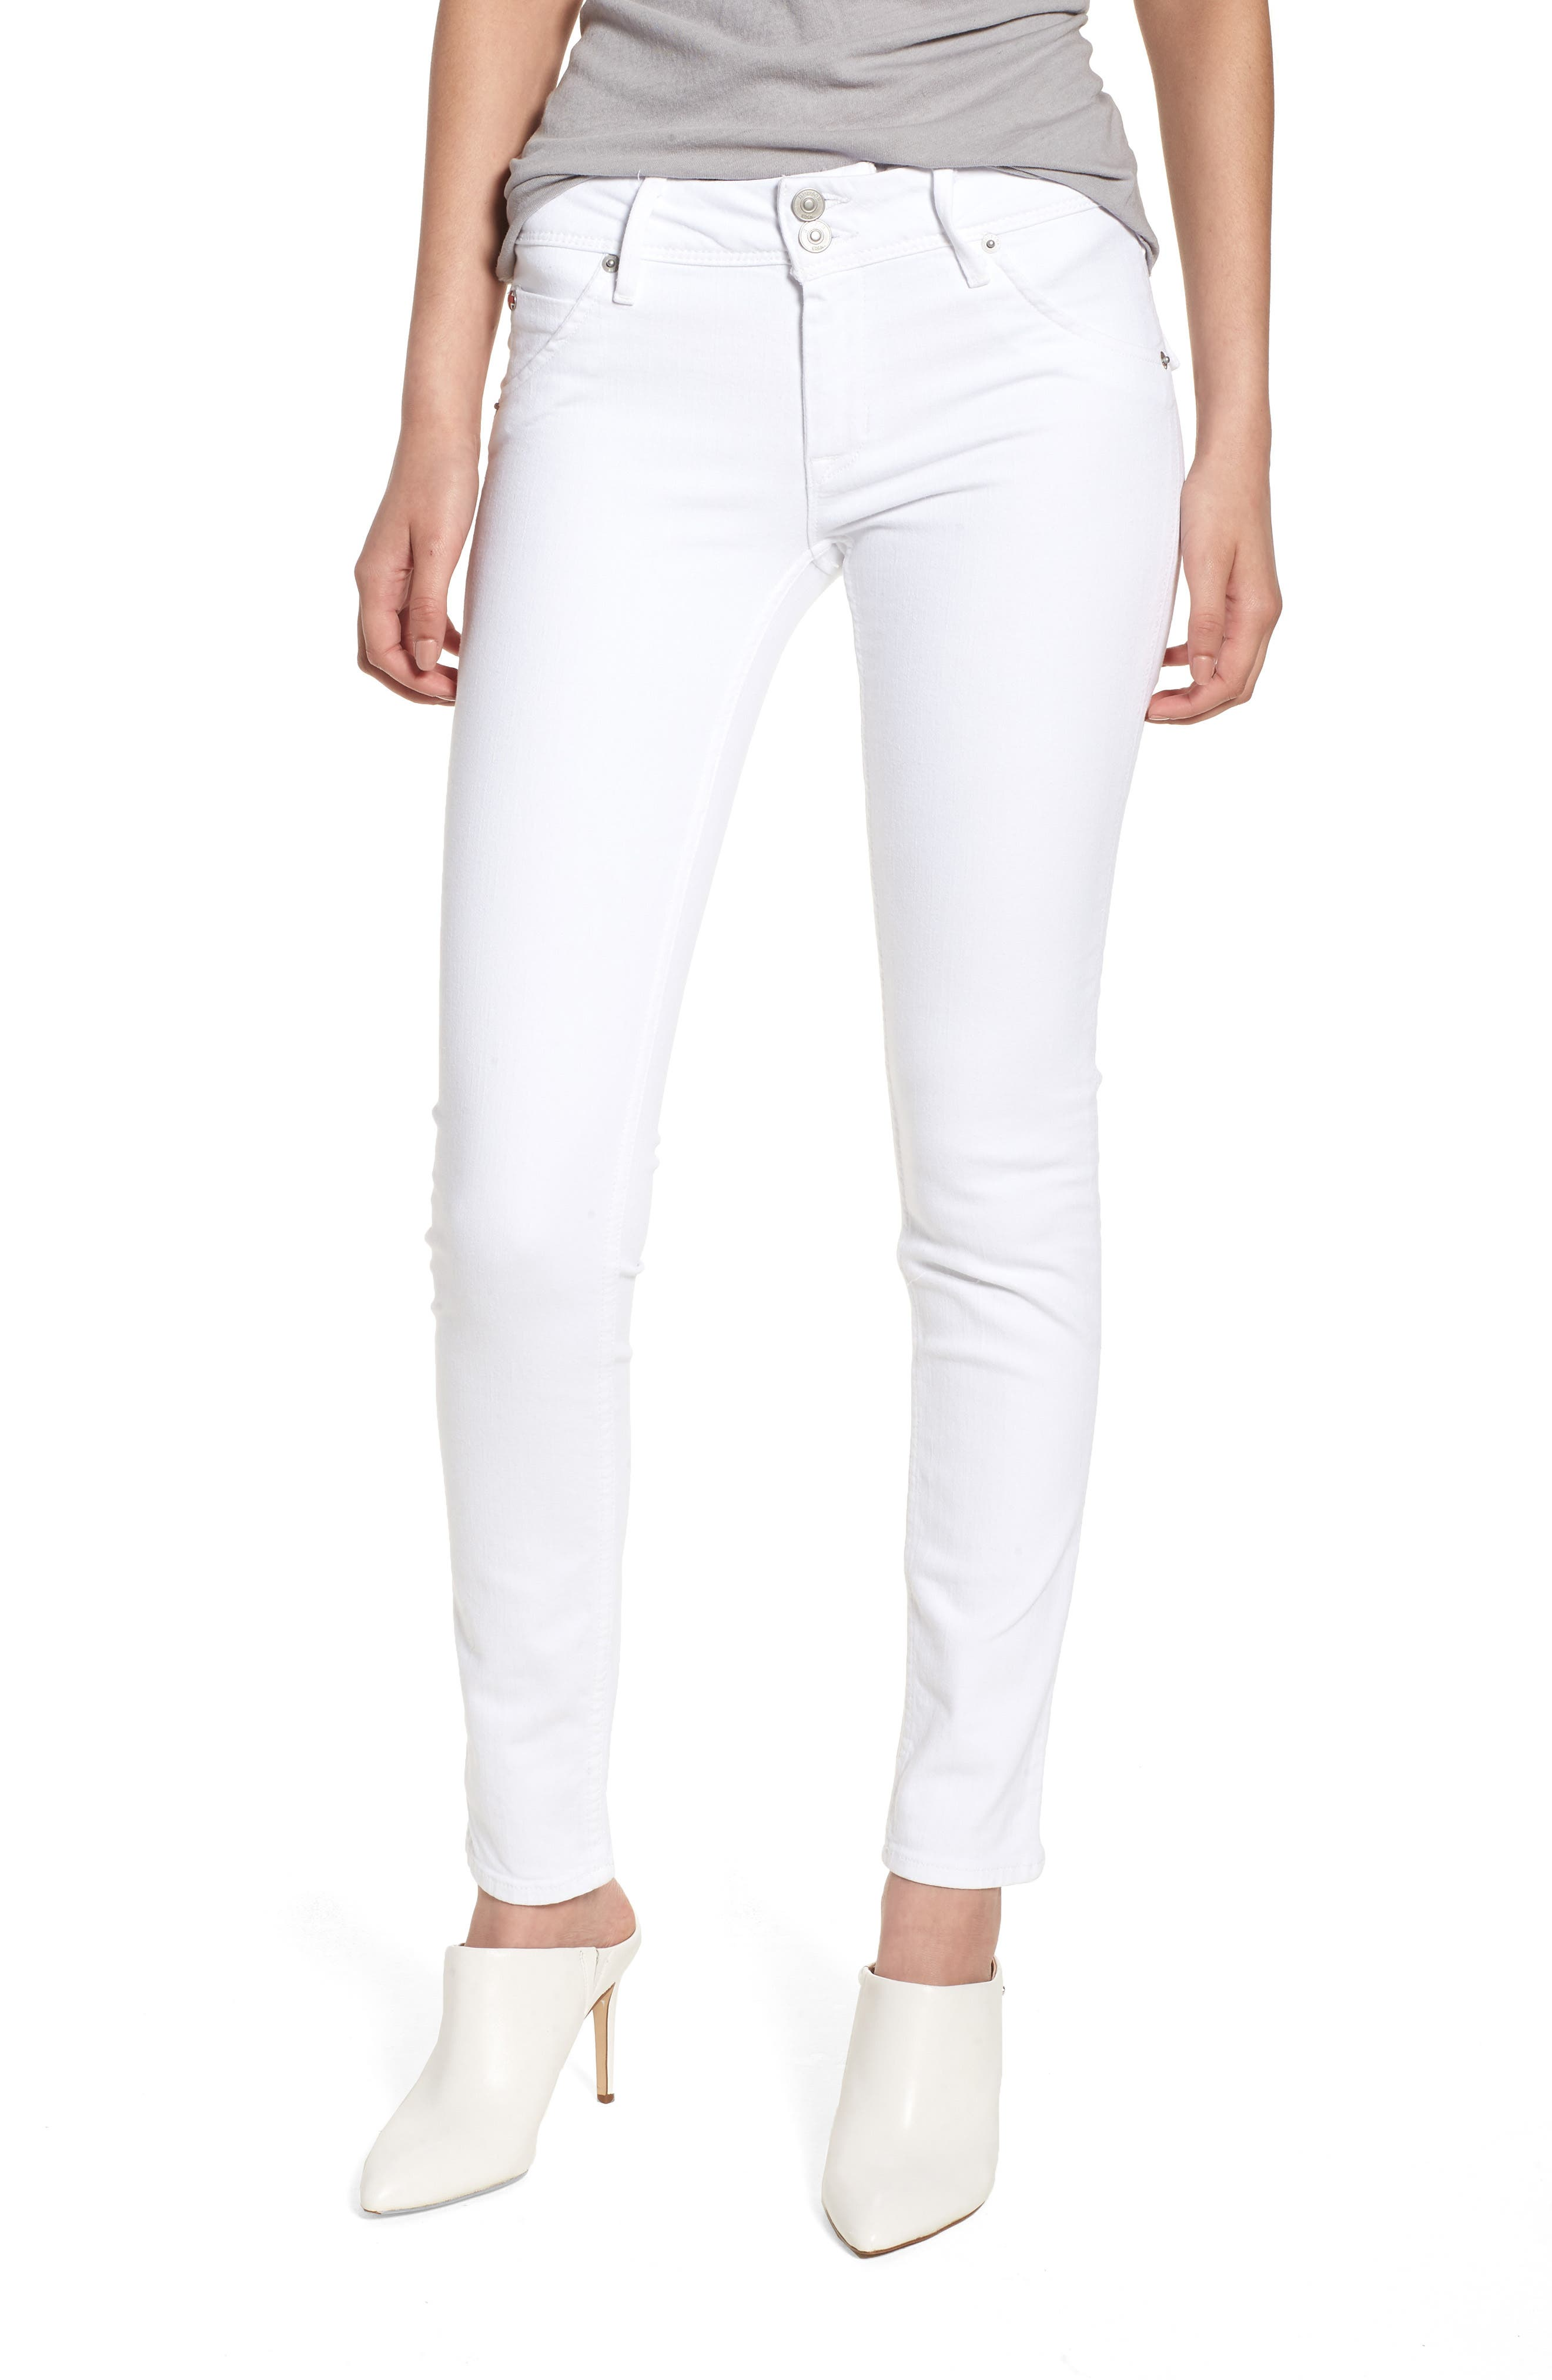 Collin Skinny Jeans,                             Main thumbnail 1, color,                             Optical White